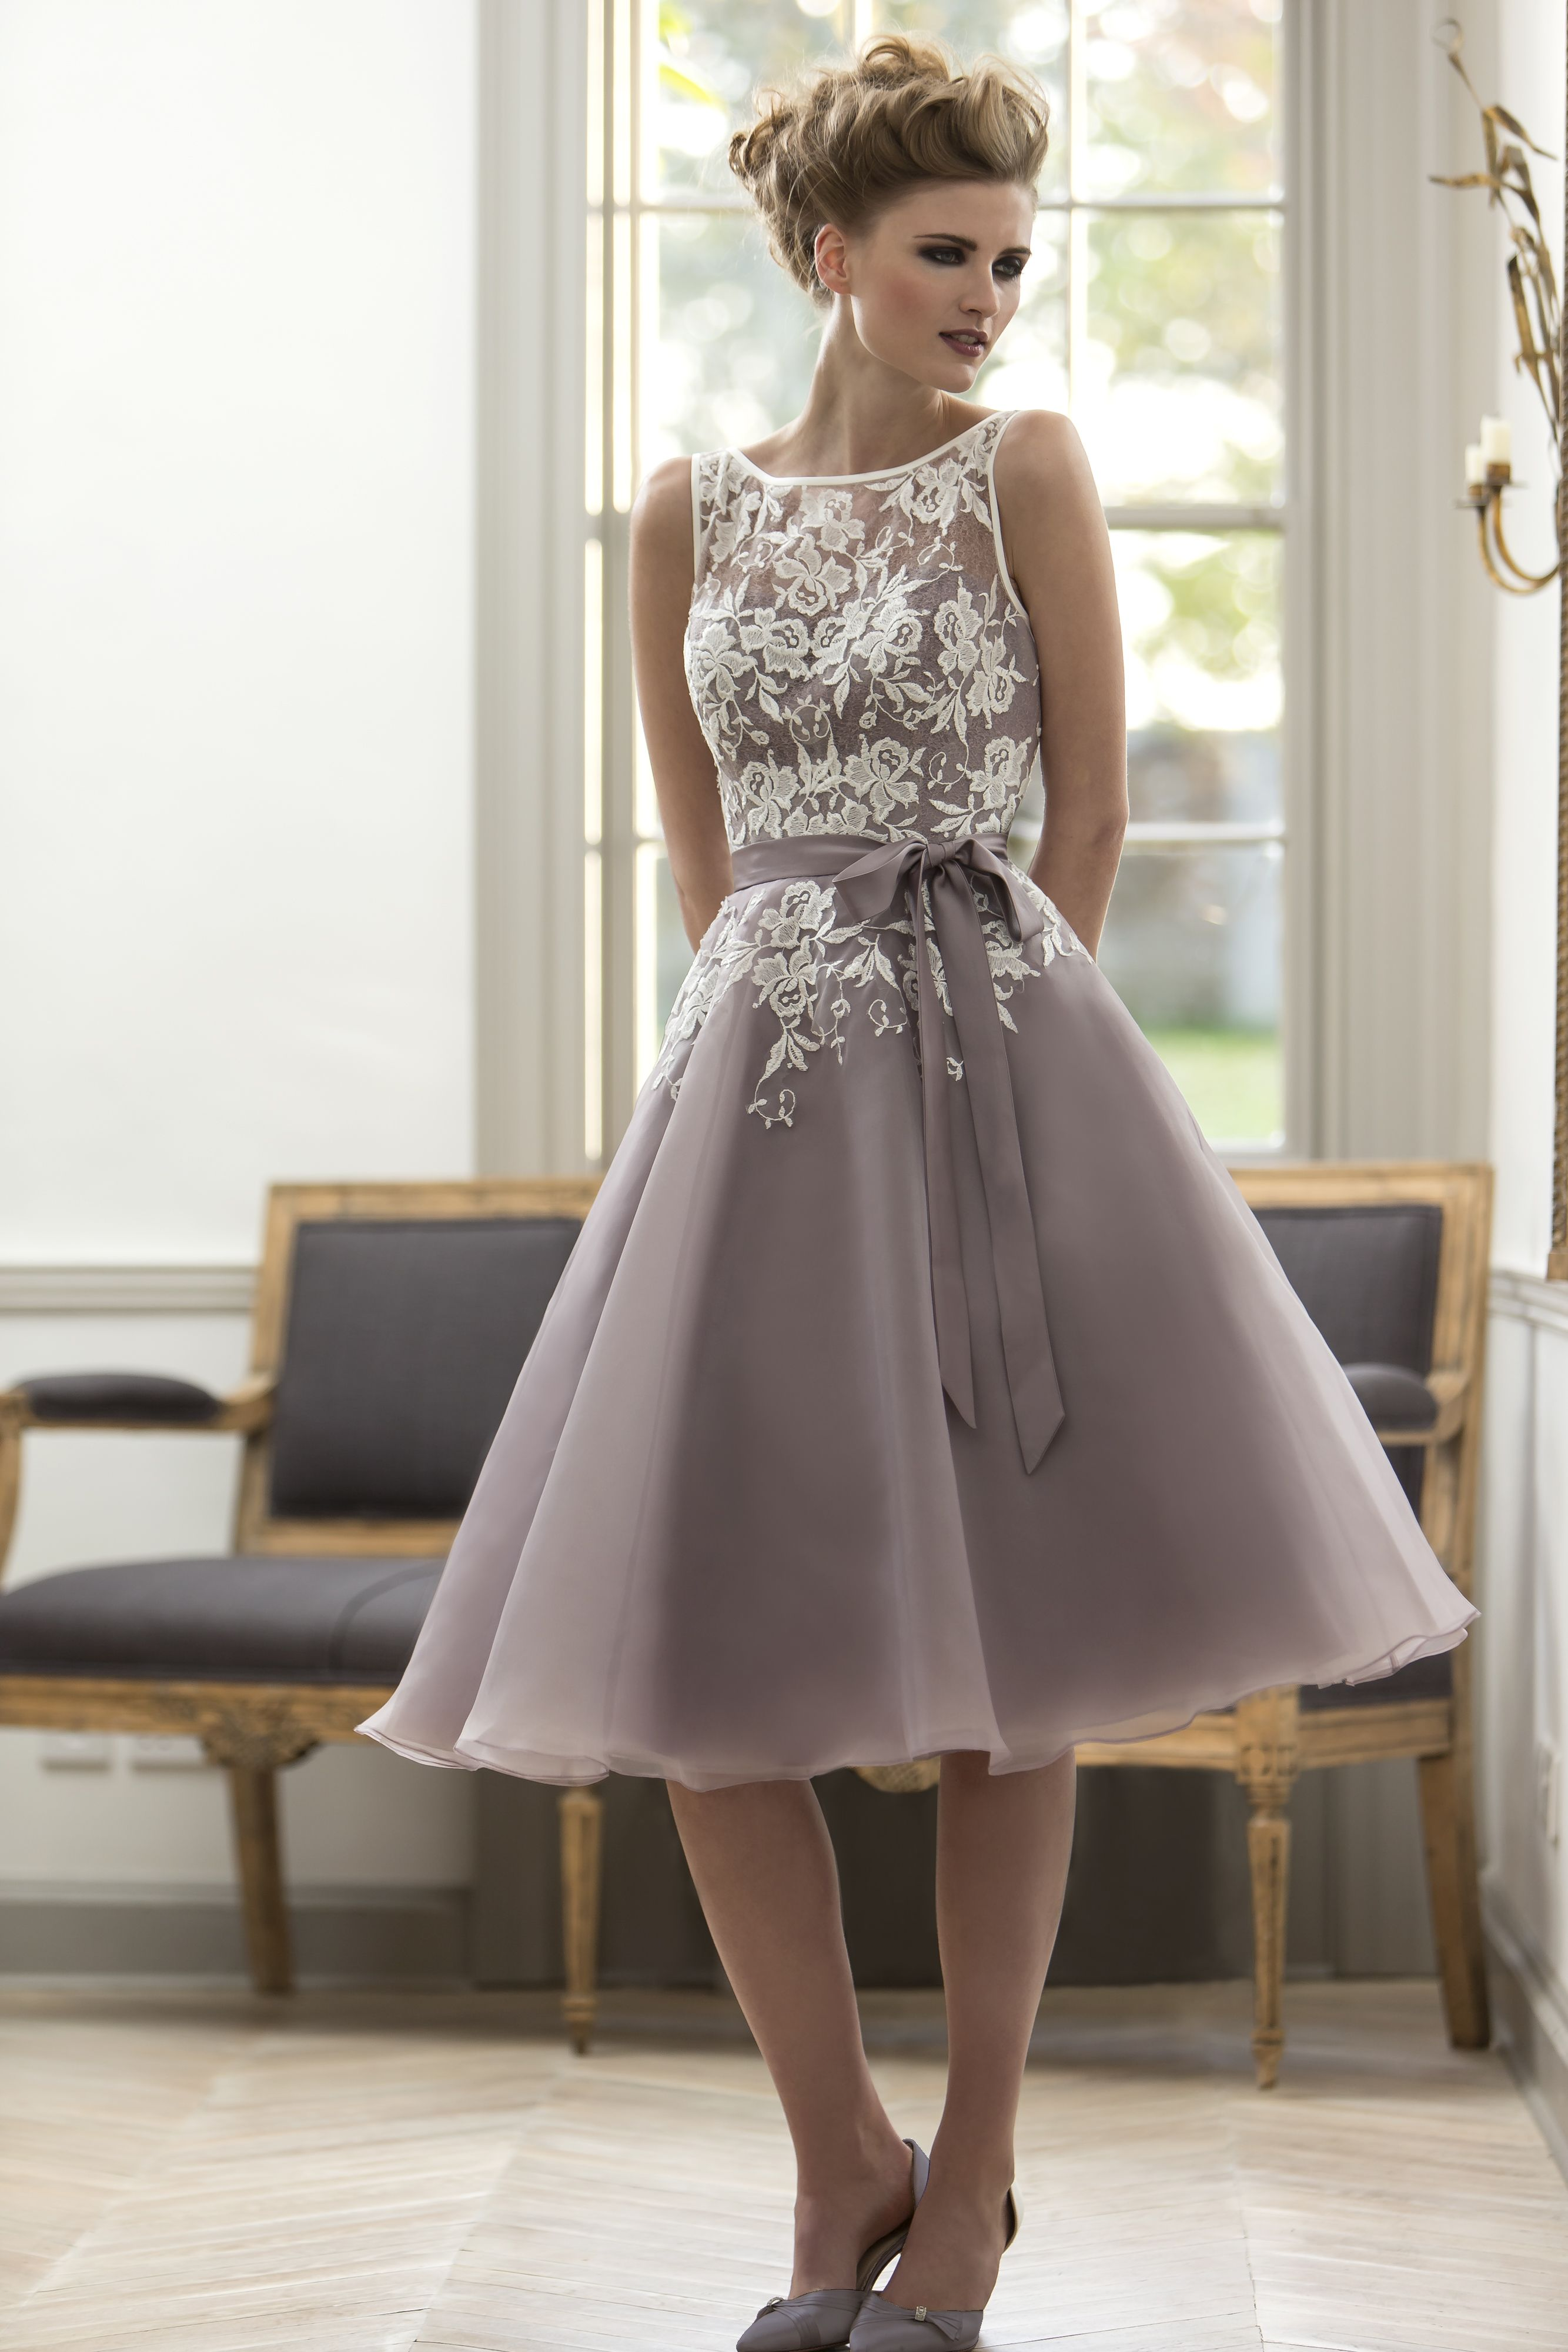 Victoria vintage dresses not another boring bridesmaid dress